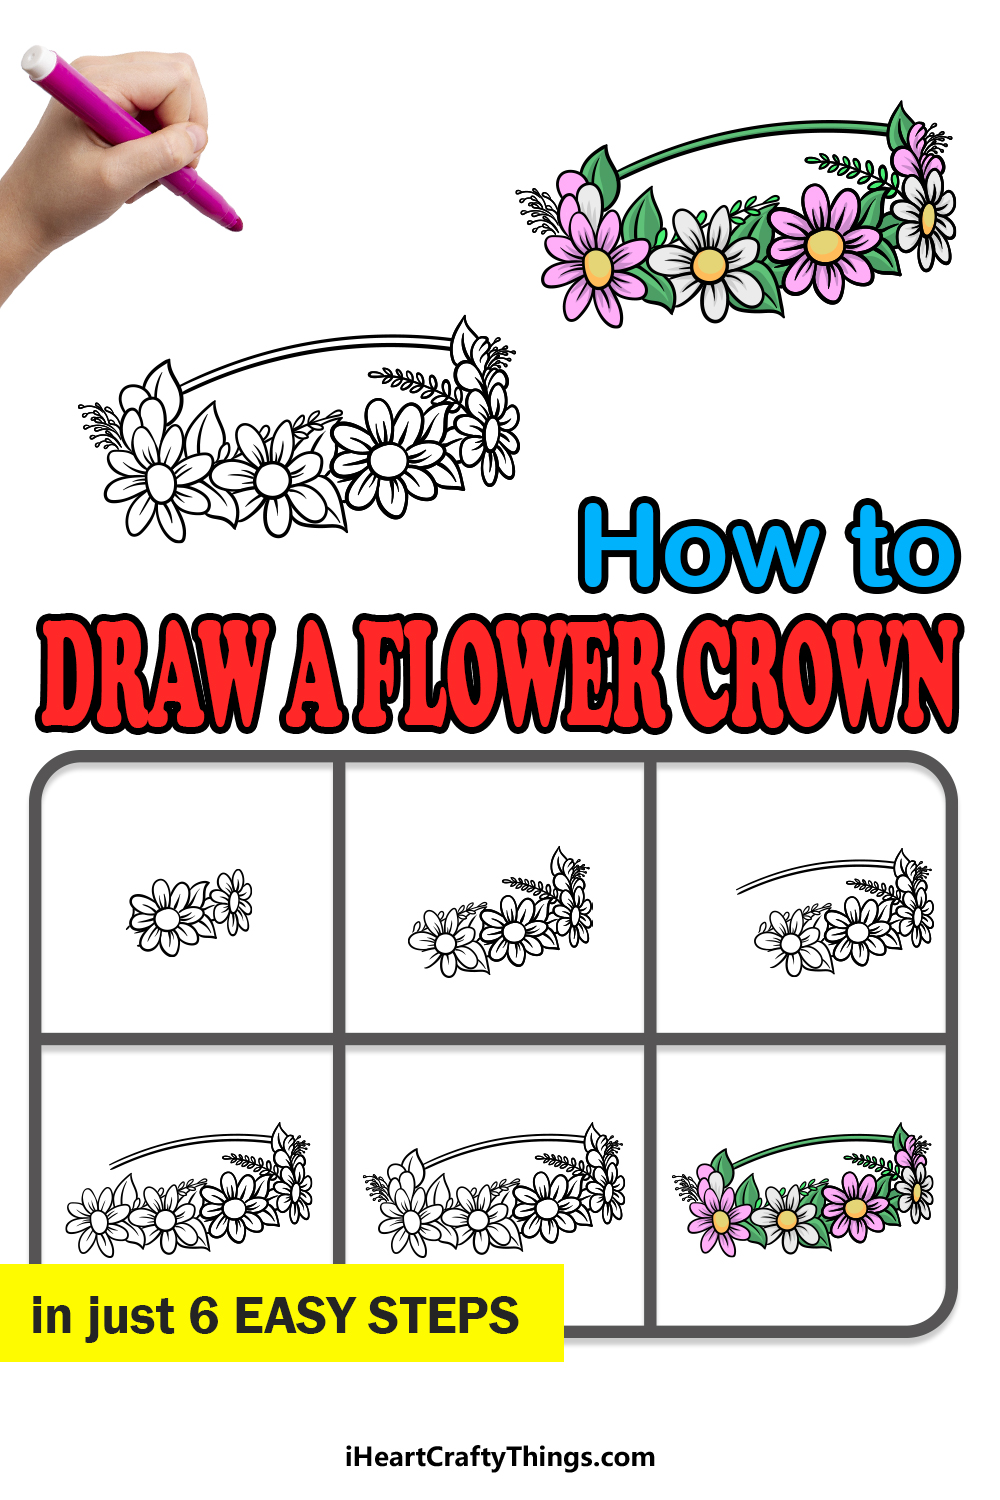 how to draw a flower crown in 6 easy steps